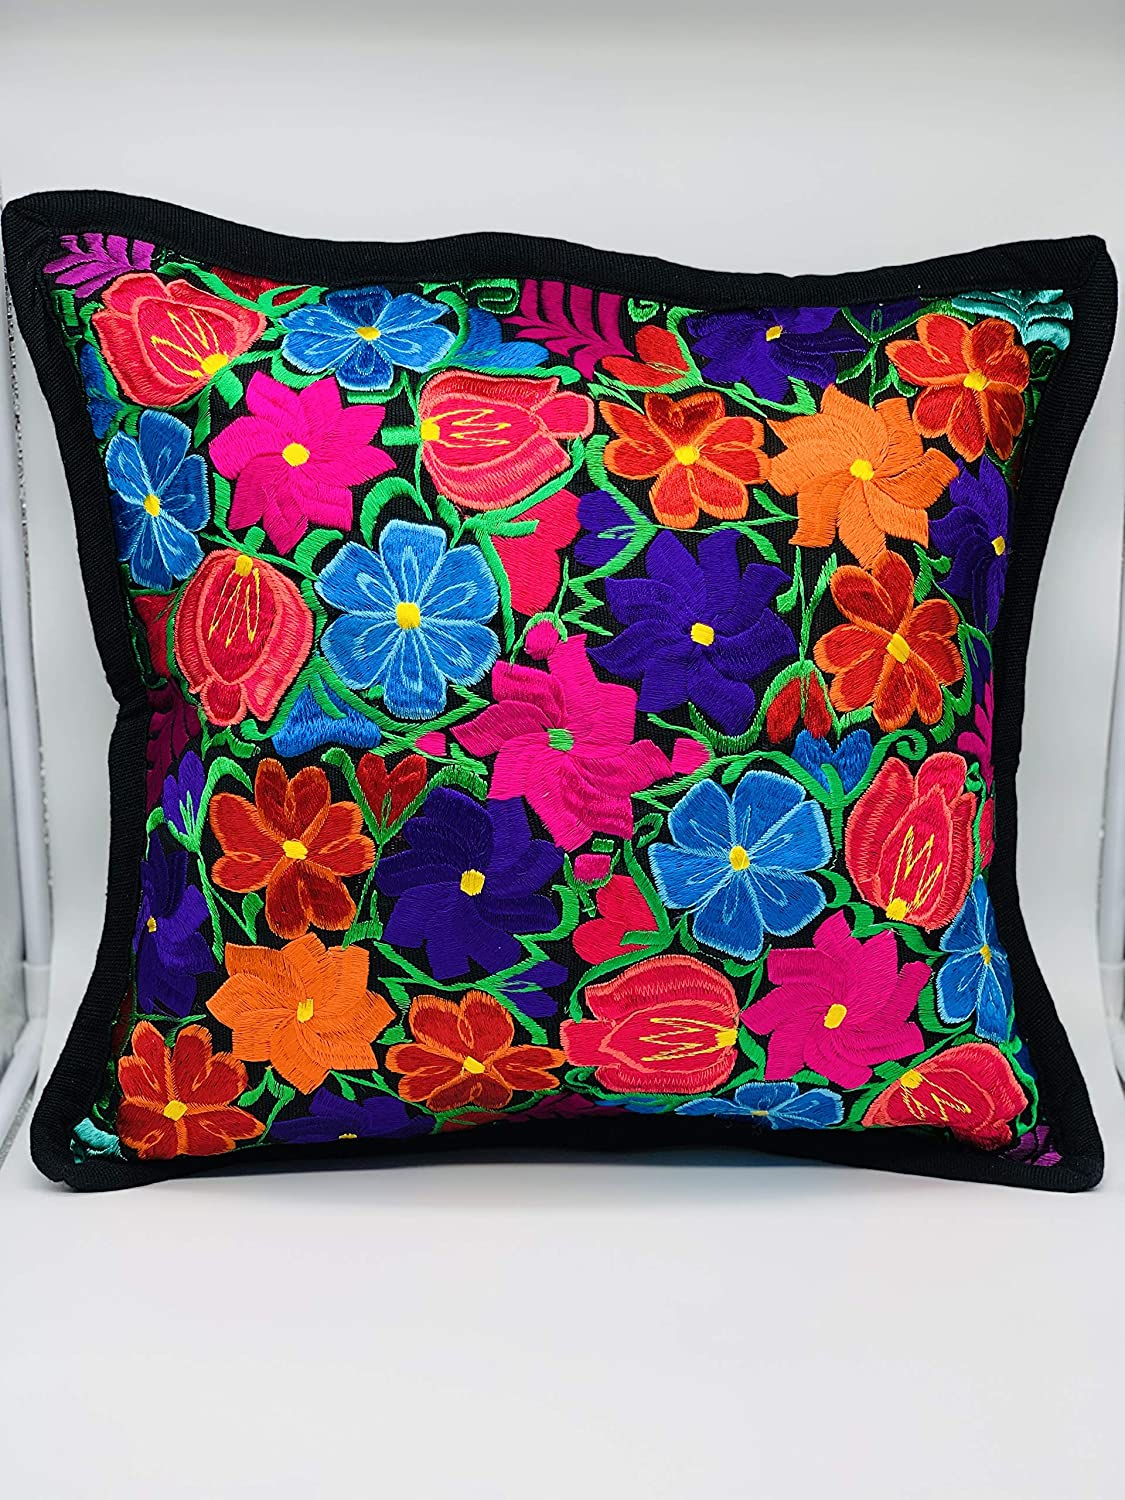 Mexican Handmade Pillow Cover Flower c Authentic Max 54% OFF cover Beautiful Classic